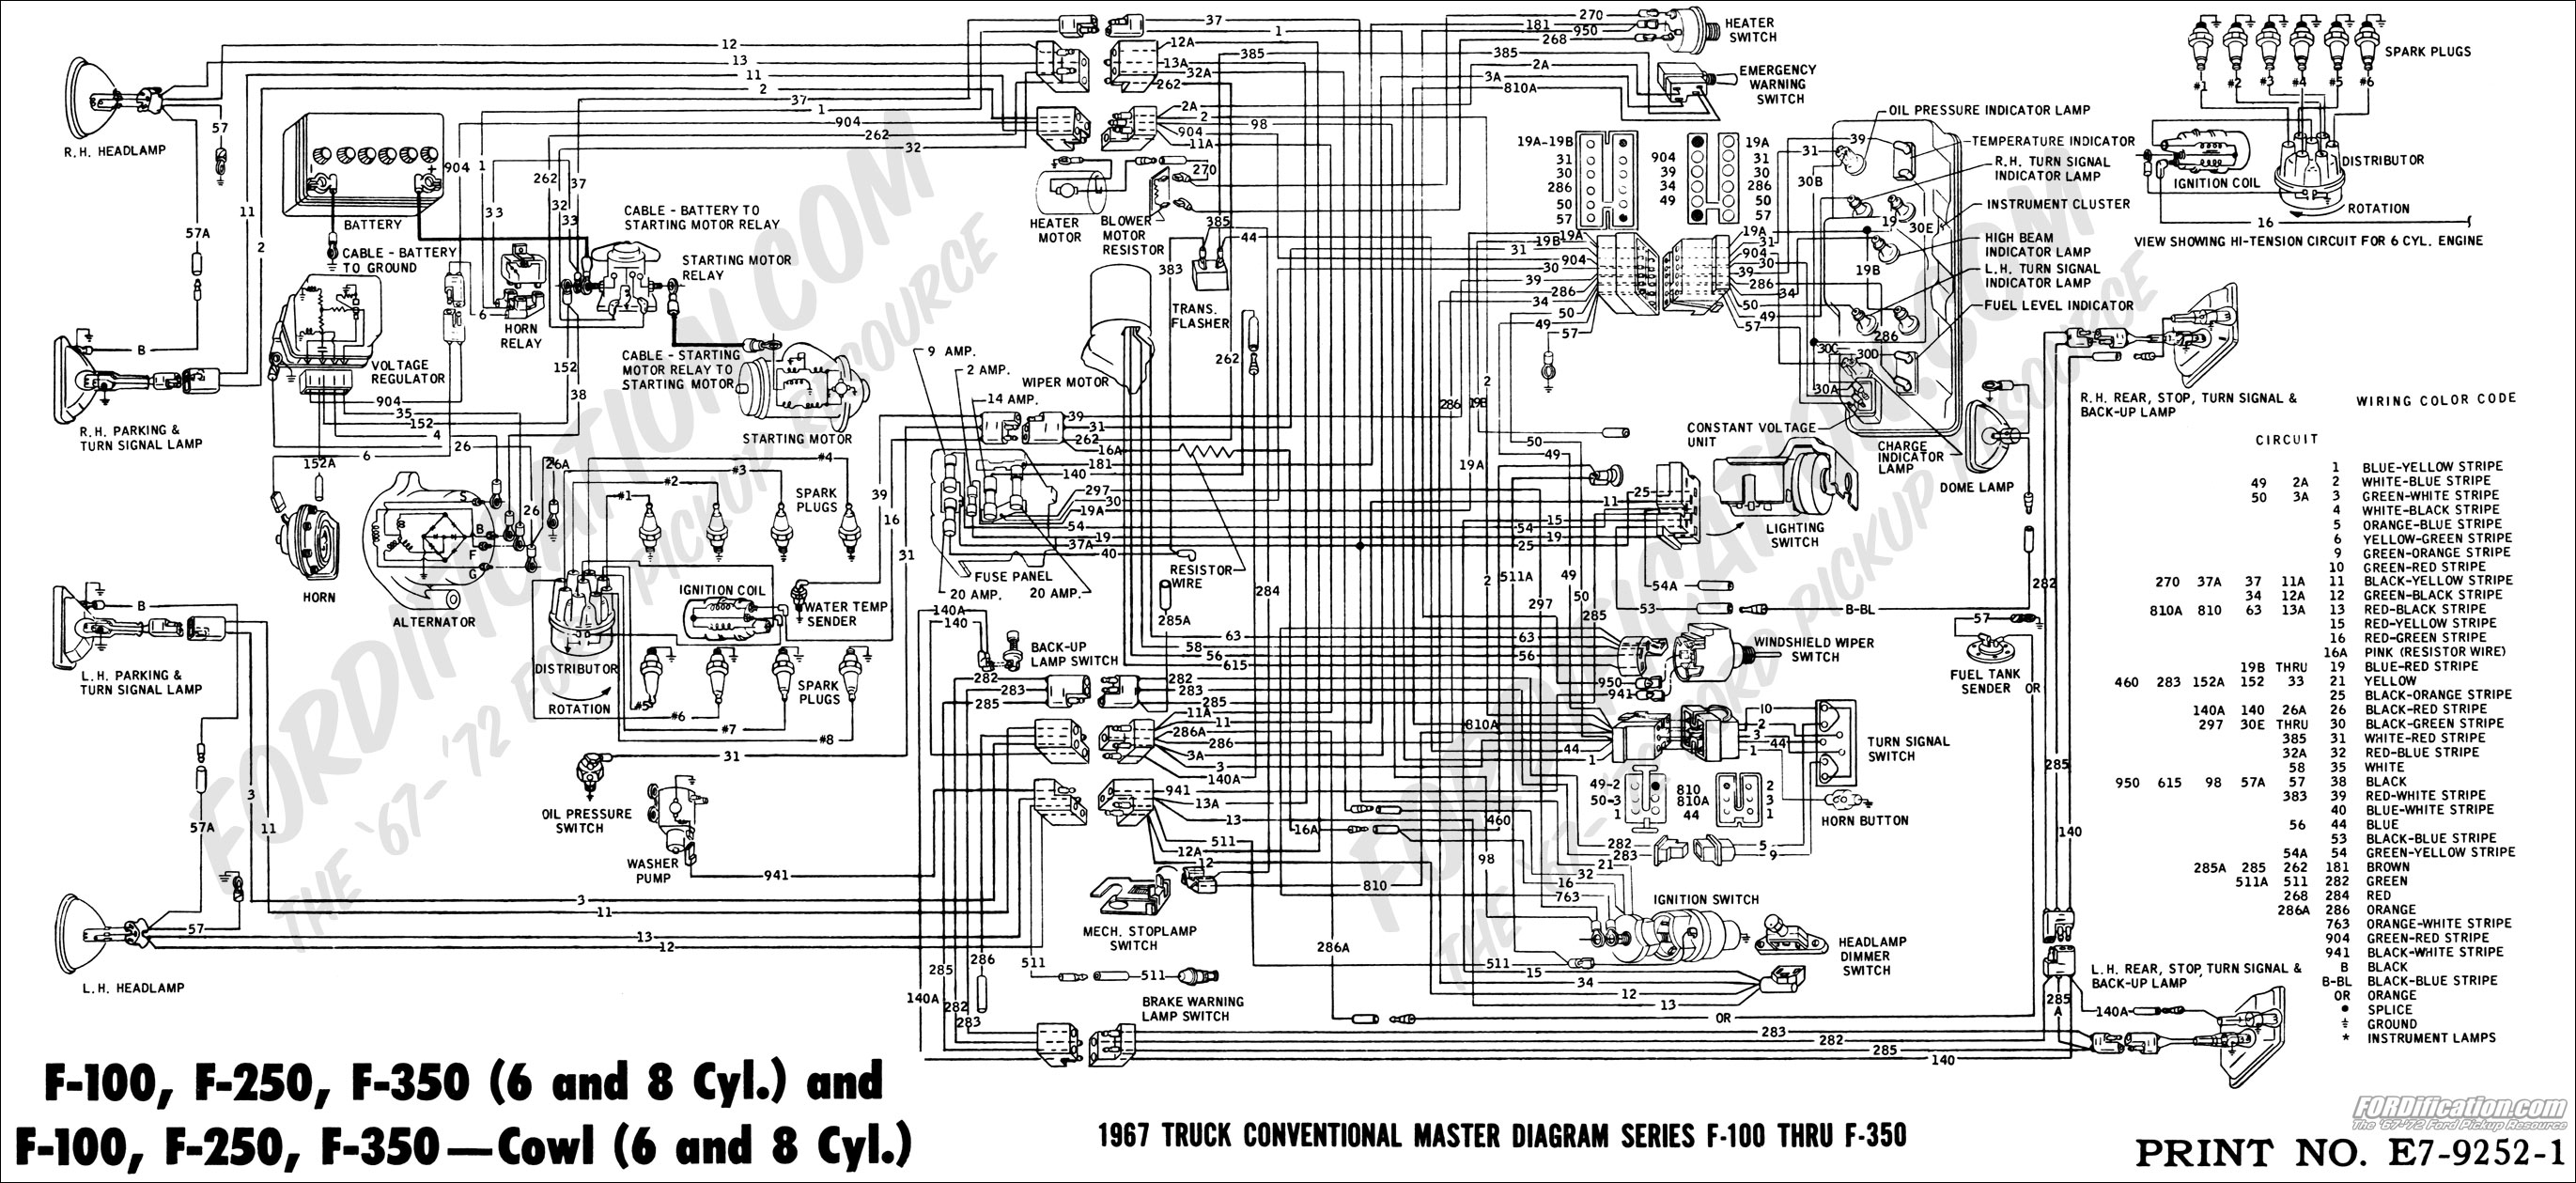 1985 ford f 250 diesel wiring schematic trusted wiring diagram u2022 rh soulmatestyle co 2002 F250 Wiring Schematic 2009 F250 Headlight Wiring